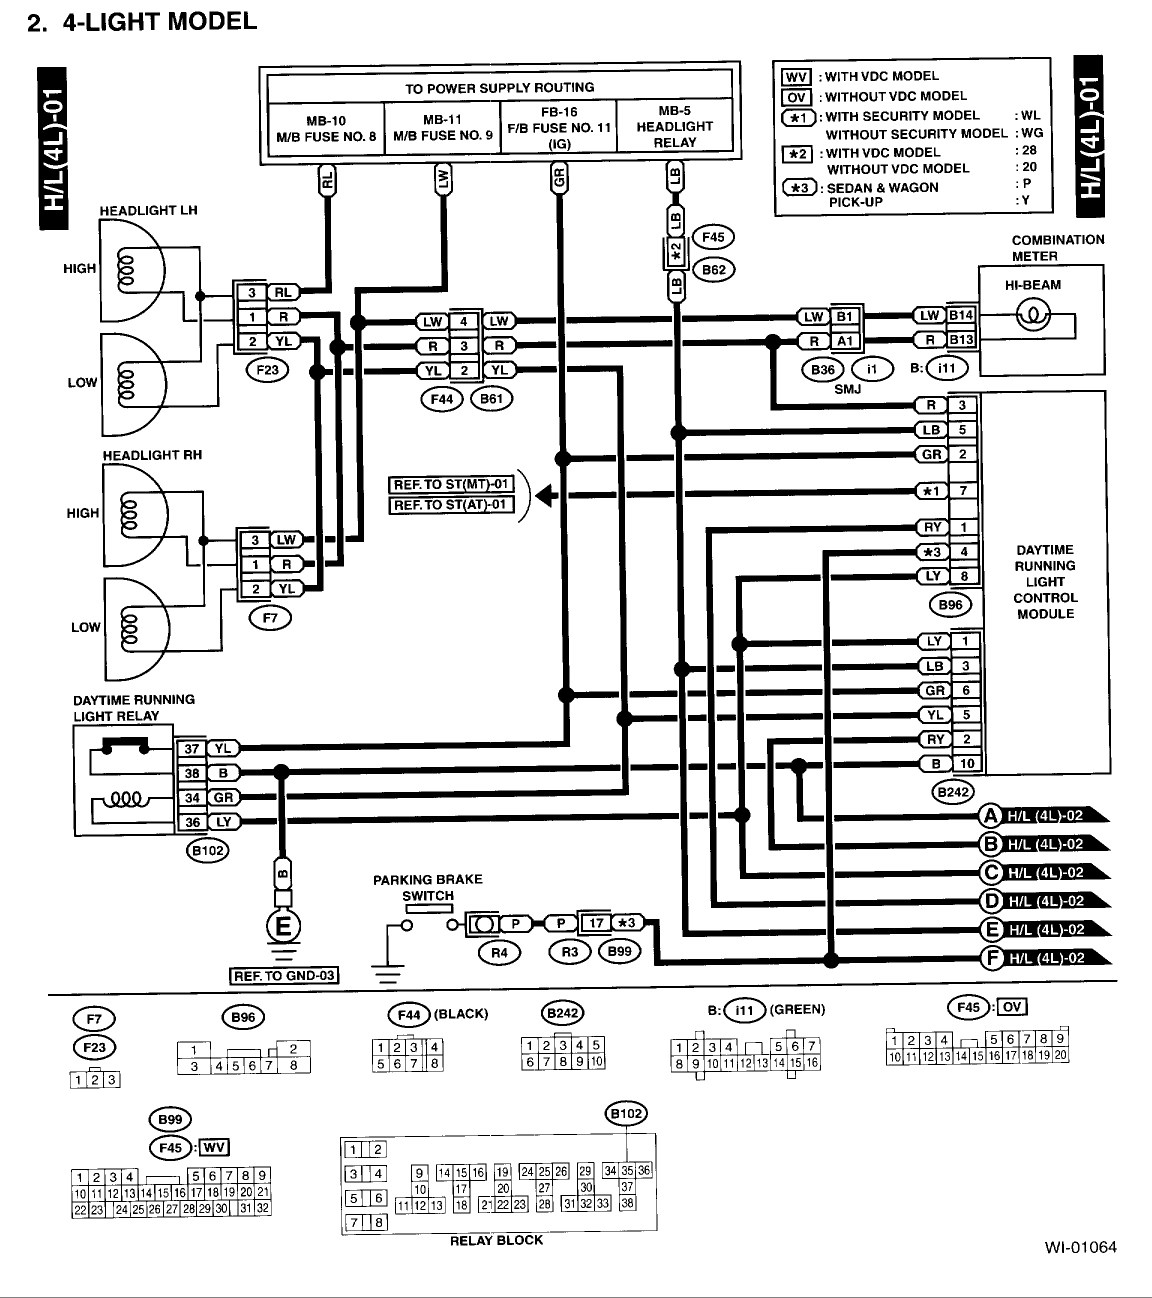 Sti Wiring Diagram - ghirardellimarco.it cable-grind - cable -grind.ghirardellimarco.itghirardellimarco.it